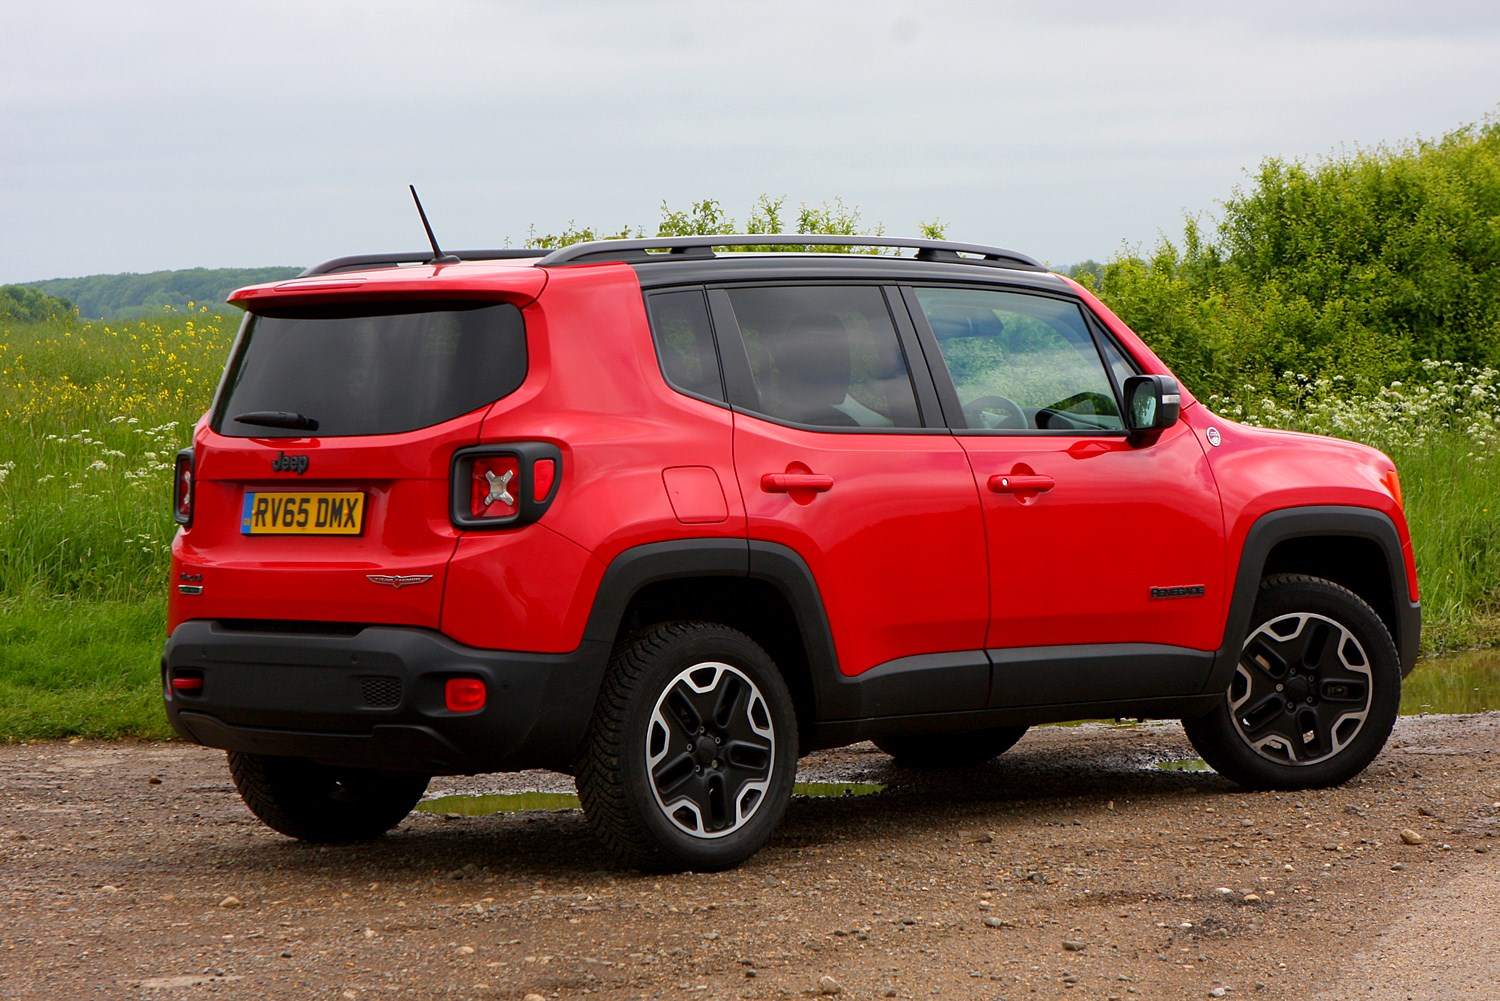 Used Car True Car >> New And Used Jeep Renegade Prices Photos Reviews Specs | Autos Post